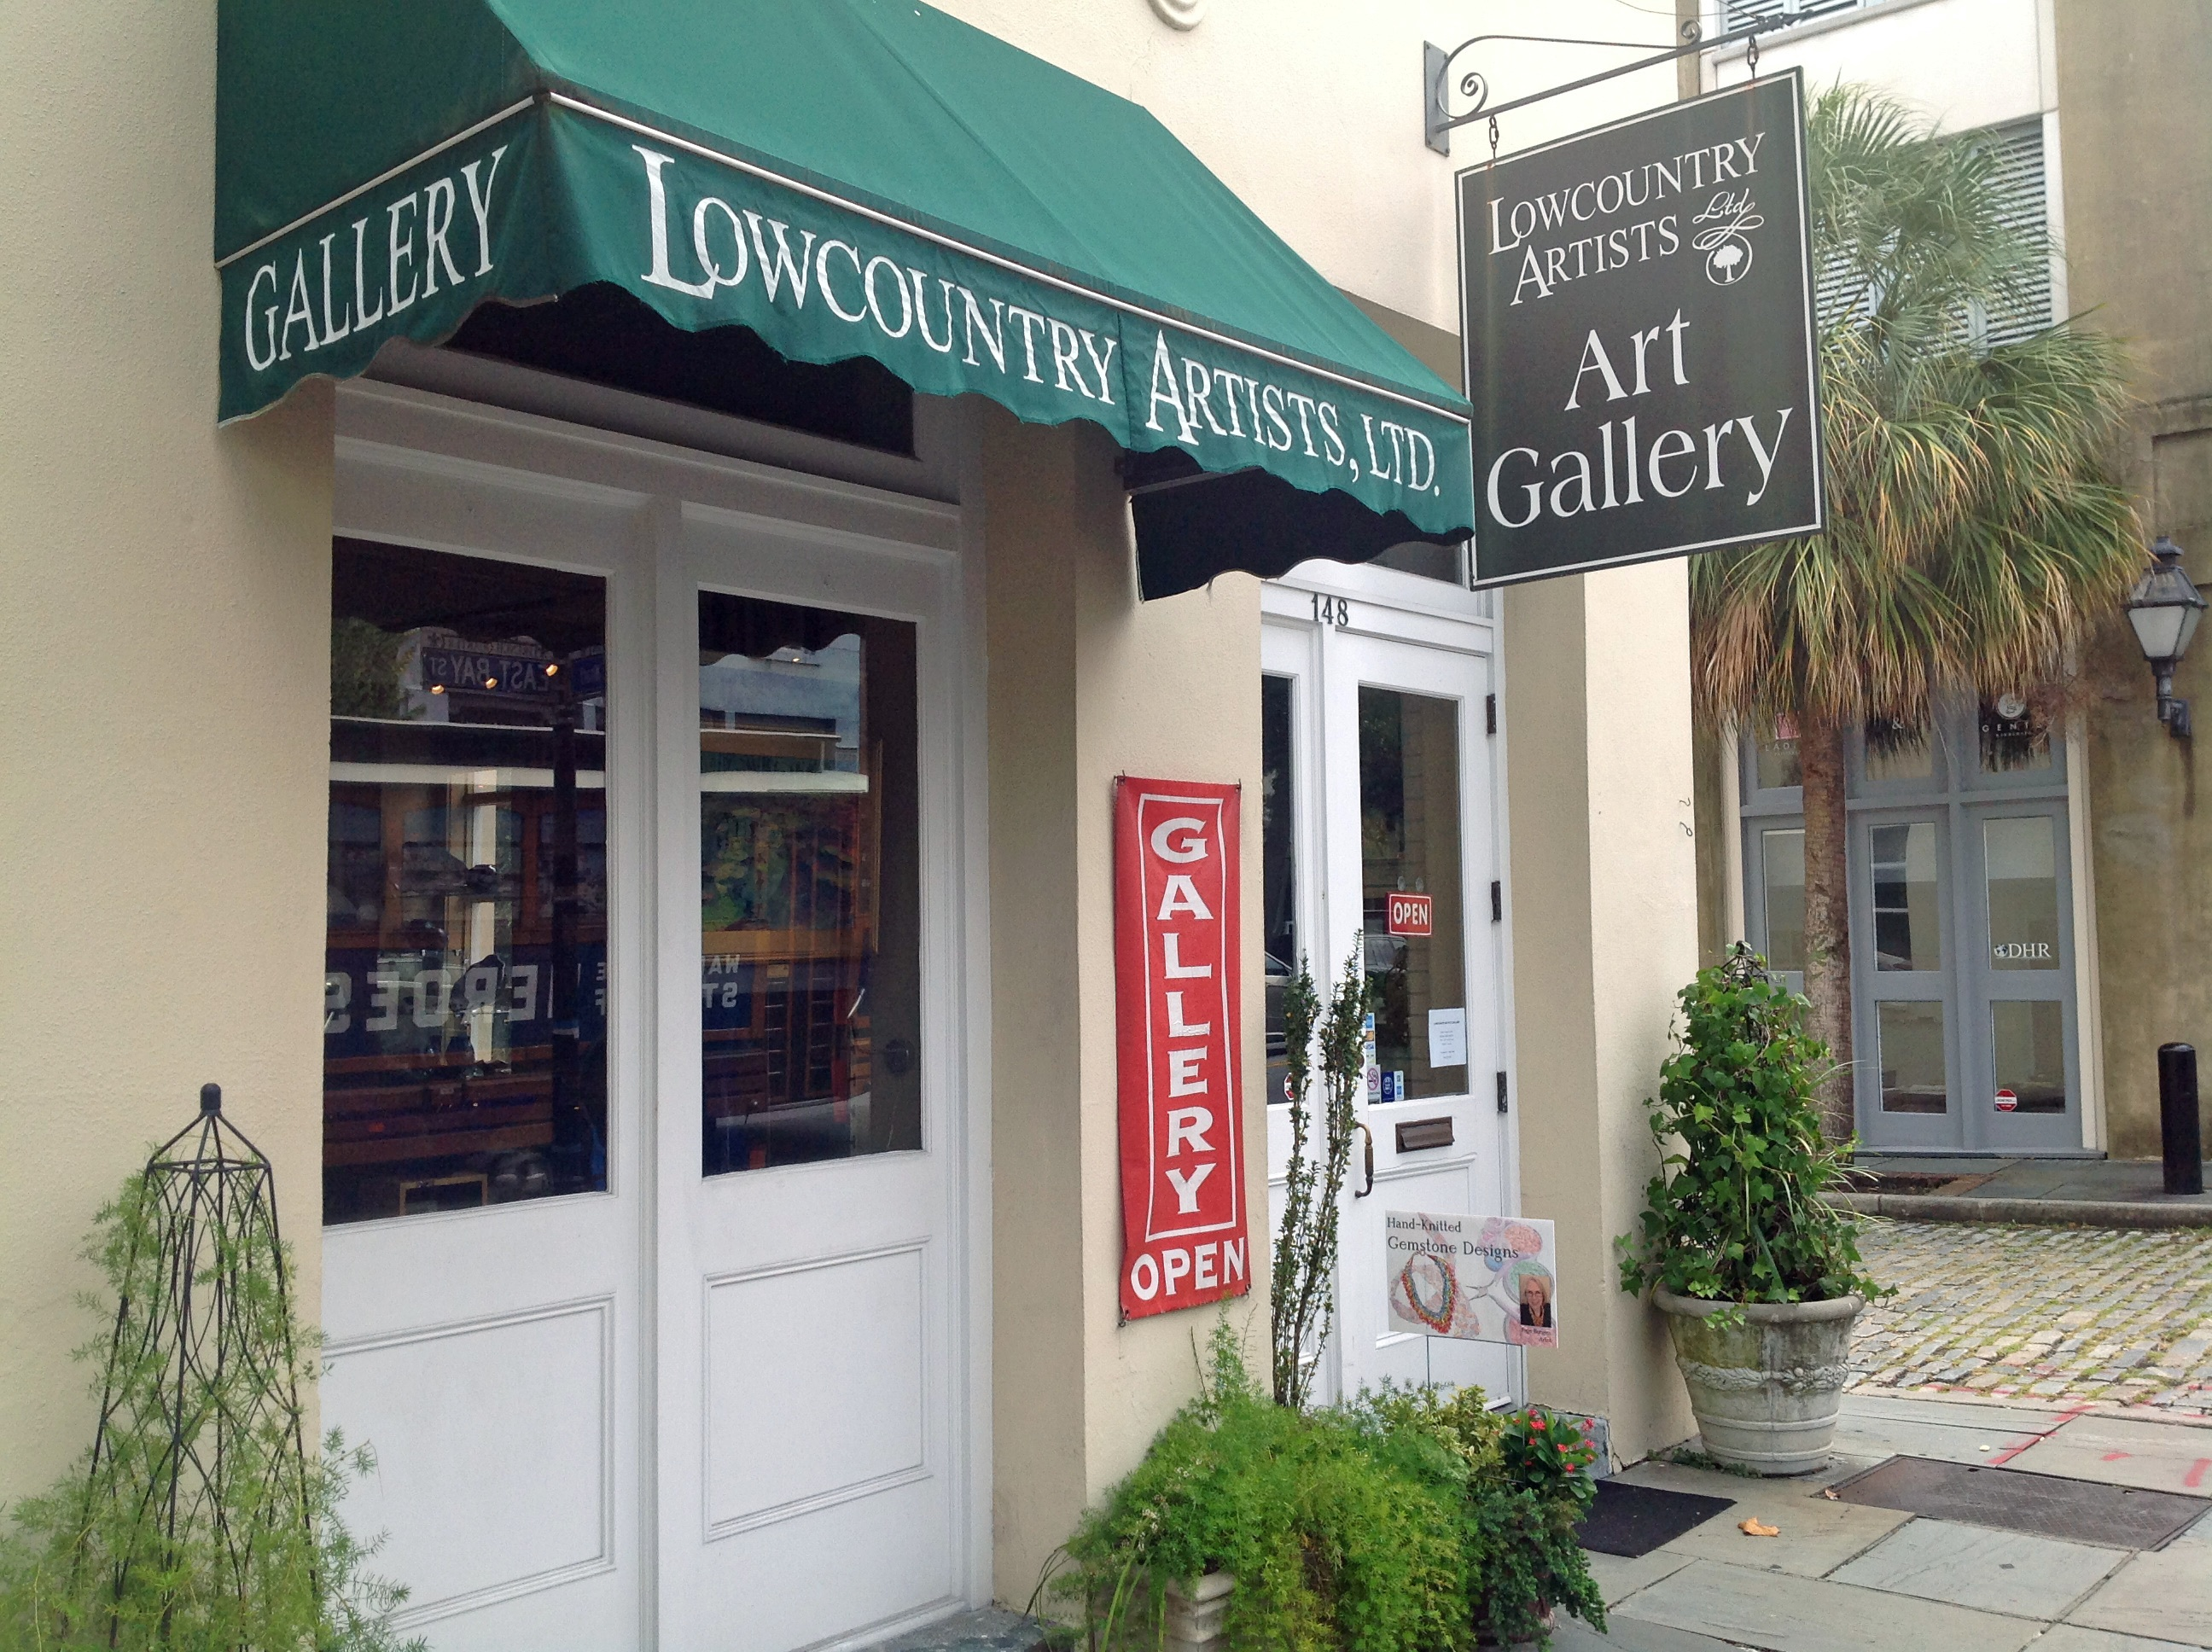 Lowcountry Artists Gallery